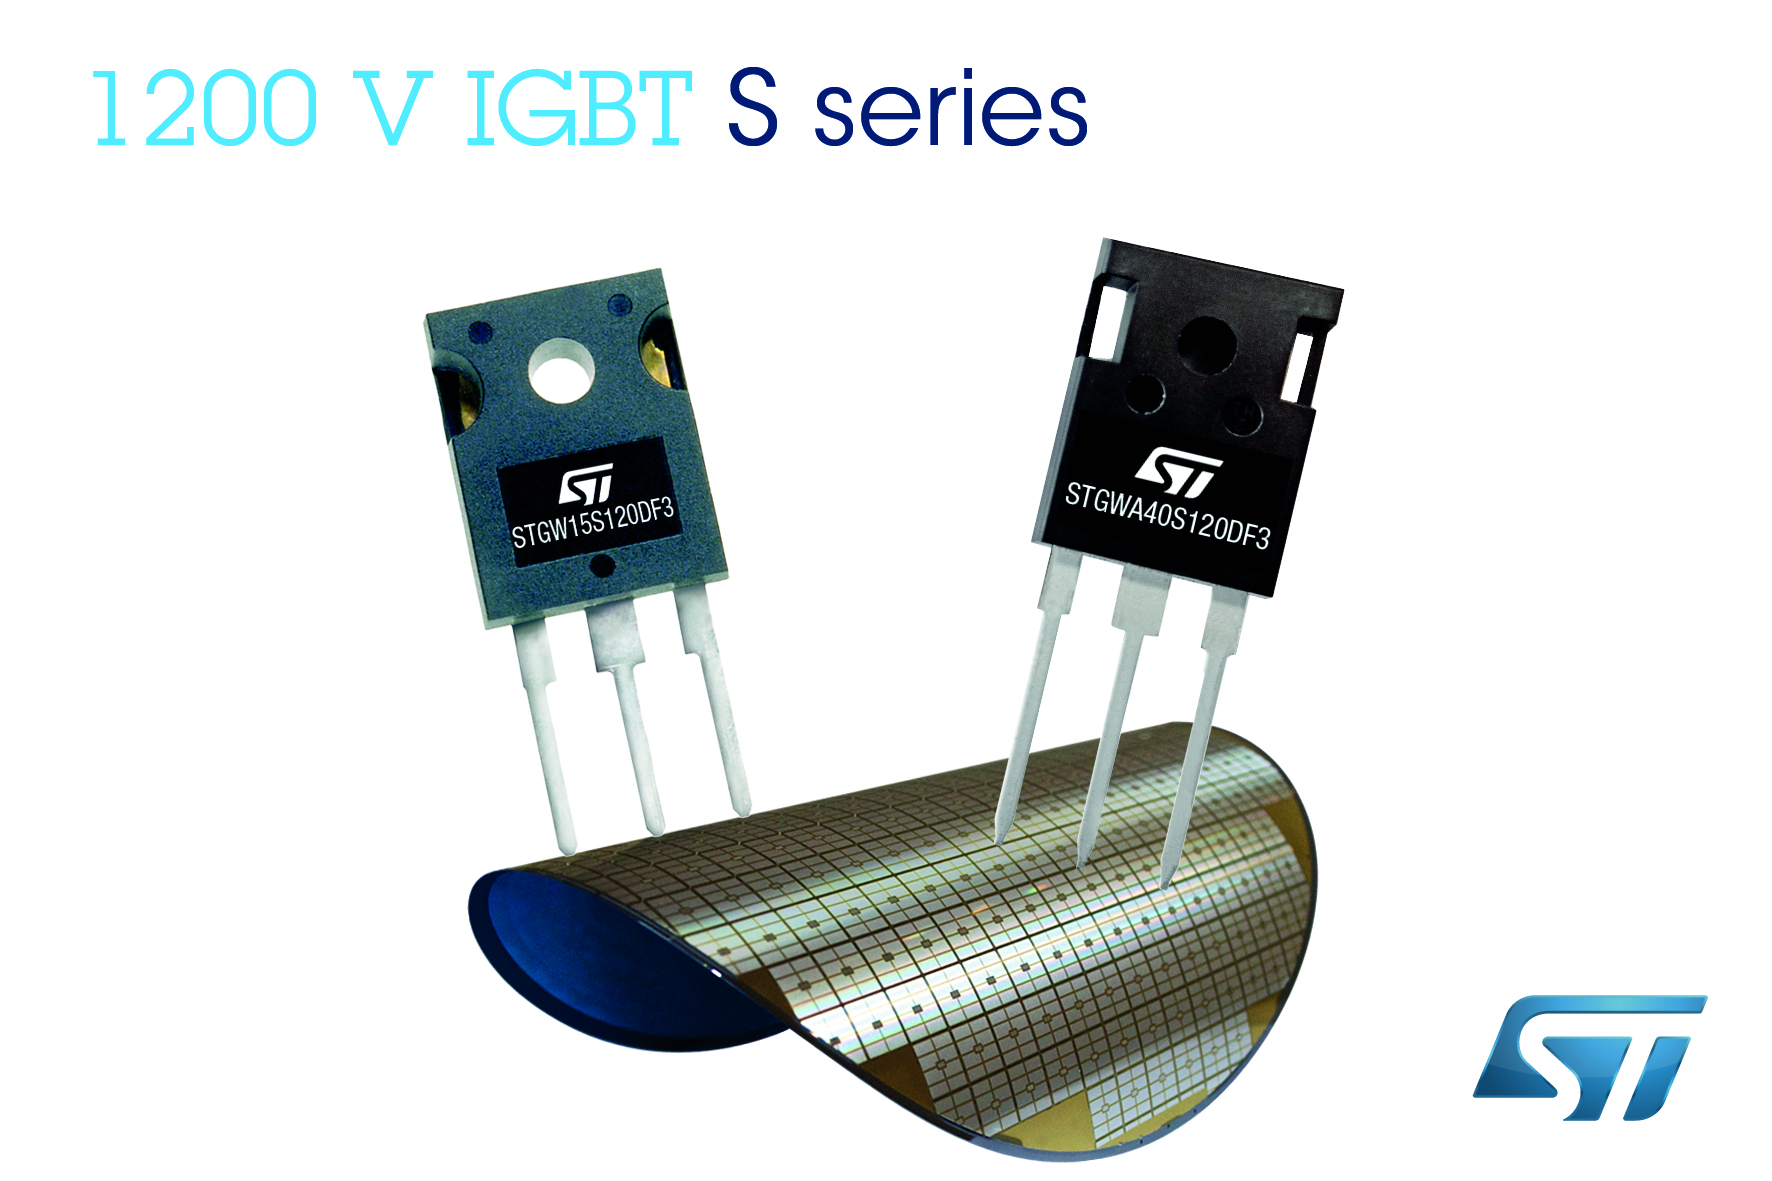 STMicro's latest 1200V IGBTs tout low-frequency performance